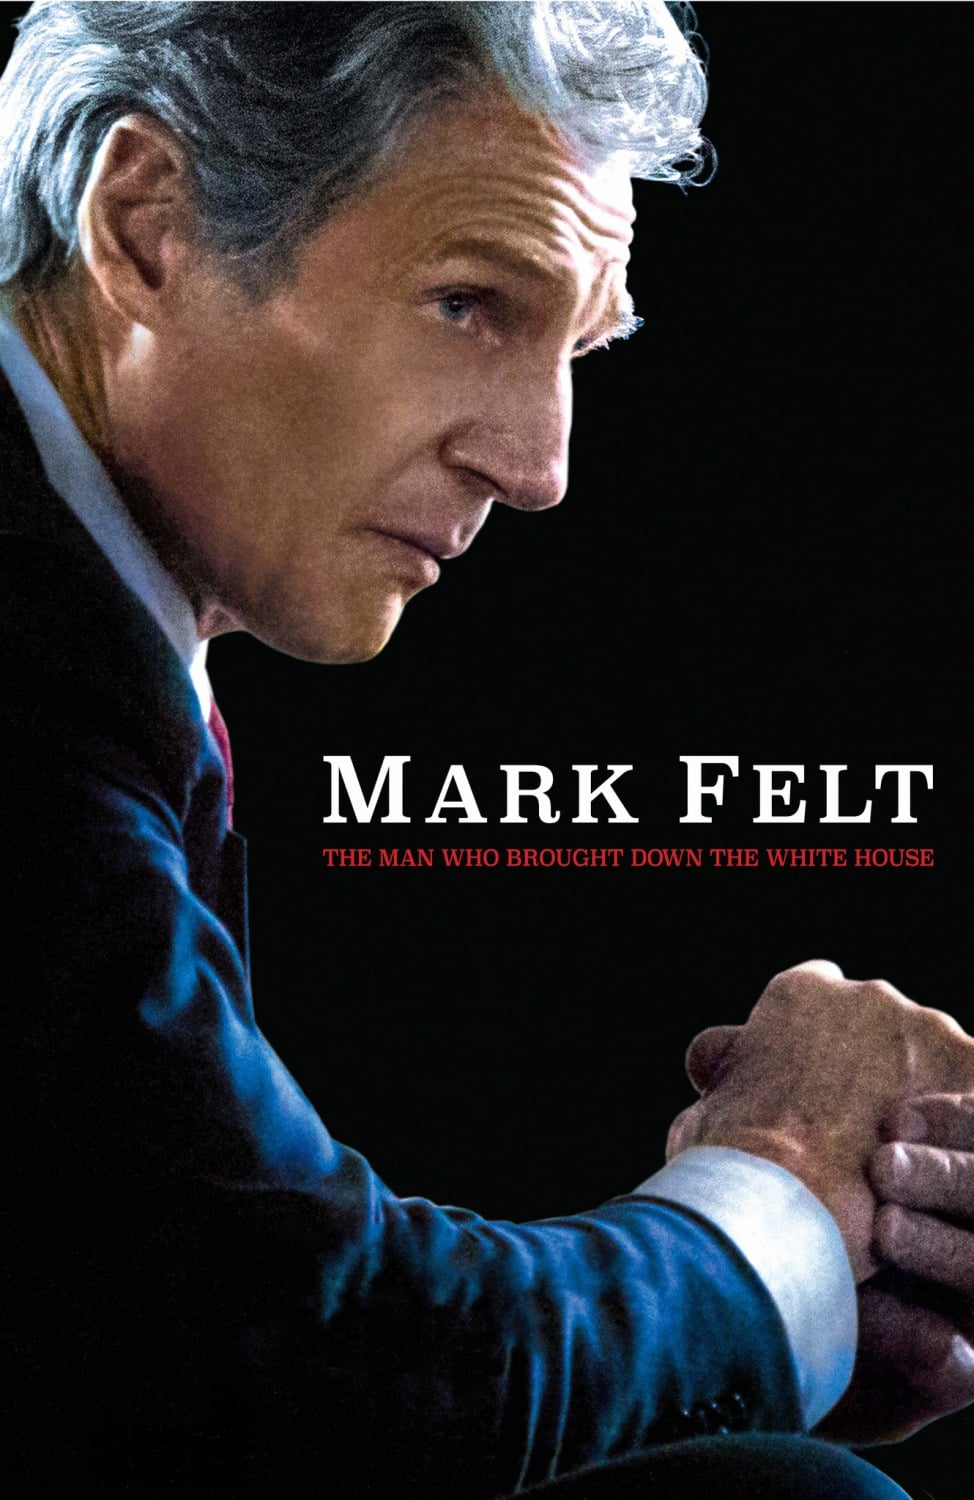 image for Mark Felt: The Man Who Brought Down the White House